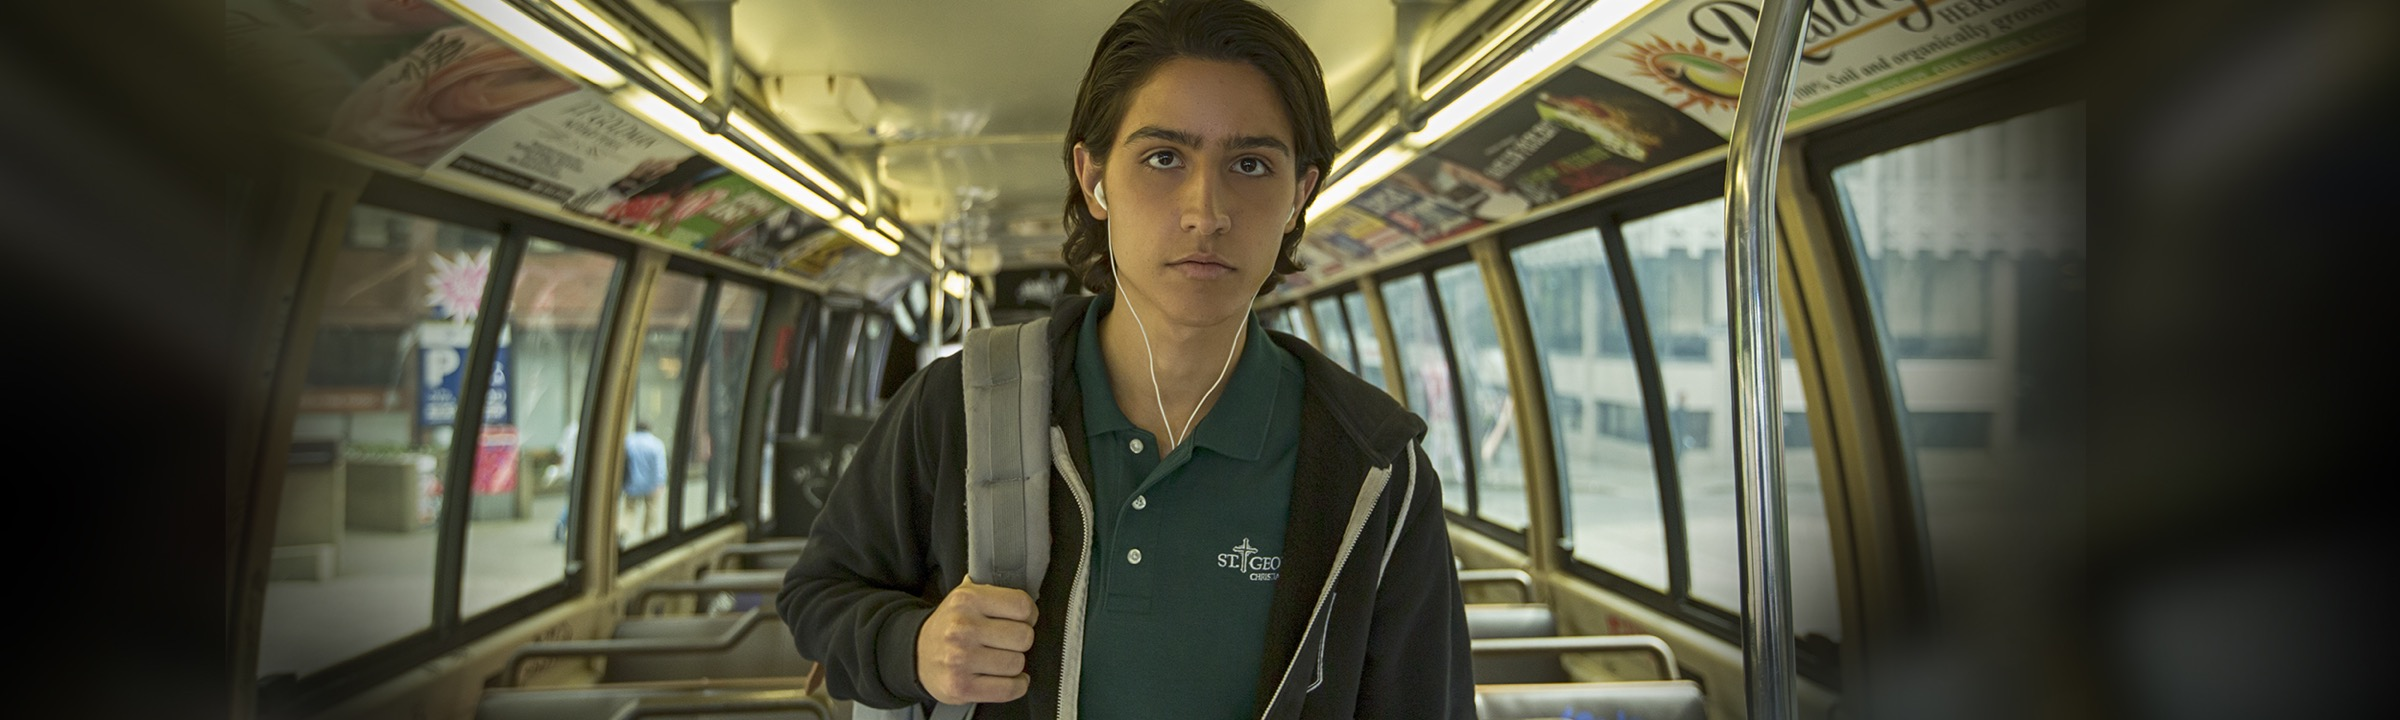 fear-the-walking-dead-entrevista-lorenzo-james-henrie-christopher-001